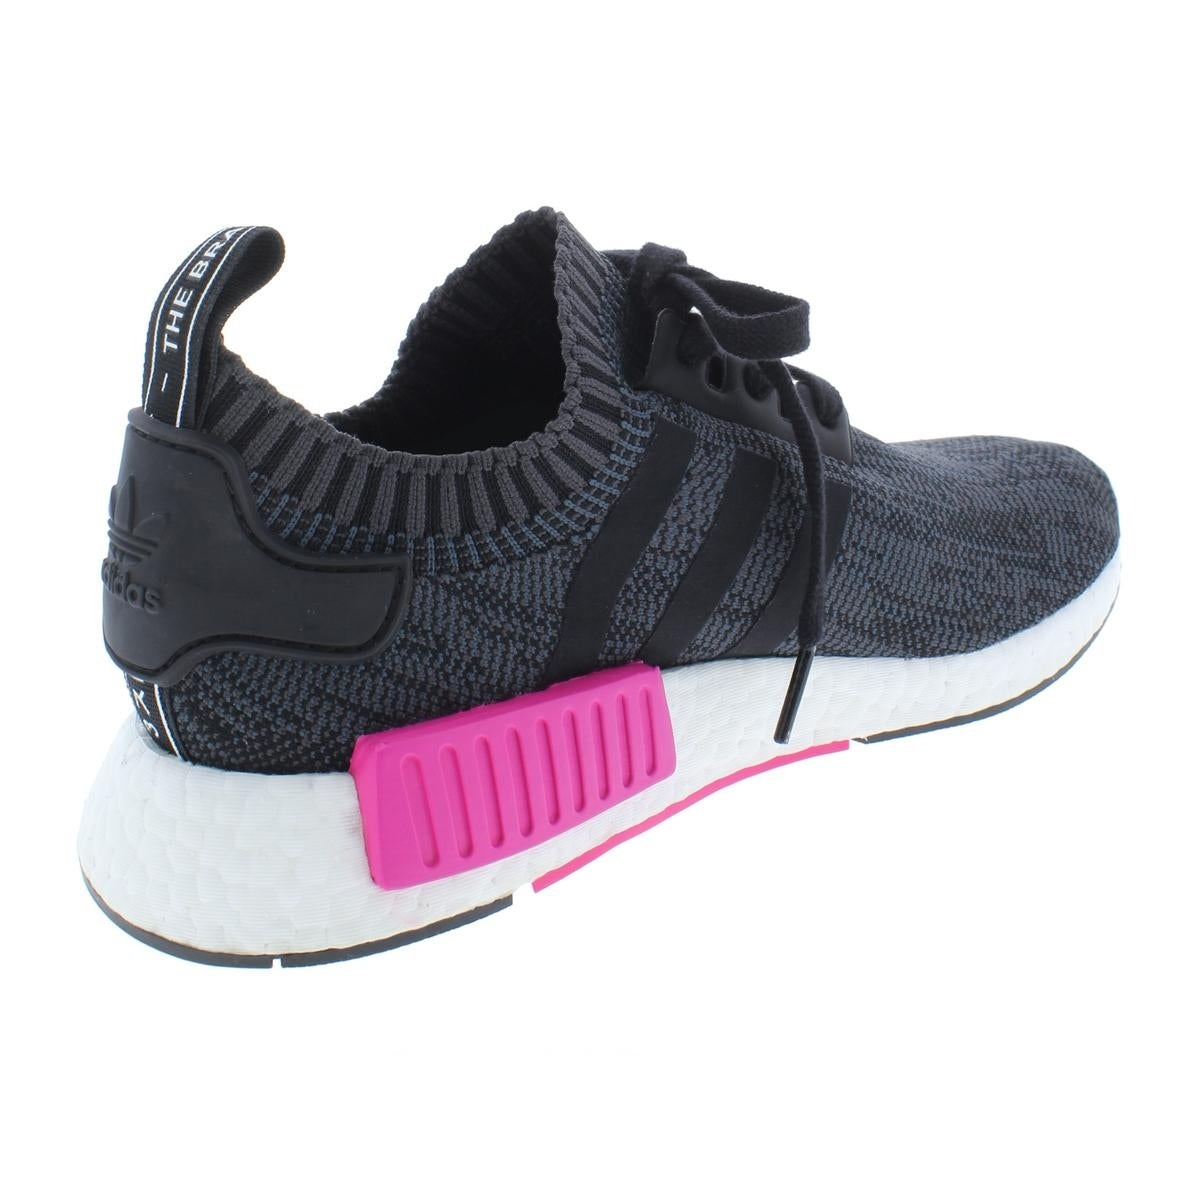 7d516b37a66 Shop adidas Originals Womens NMD R1 Running